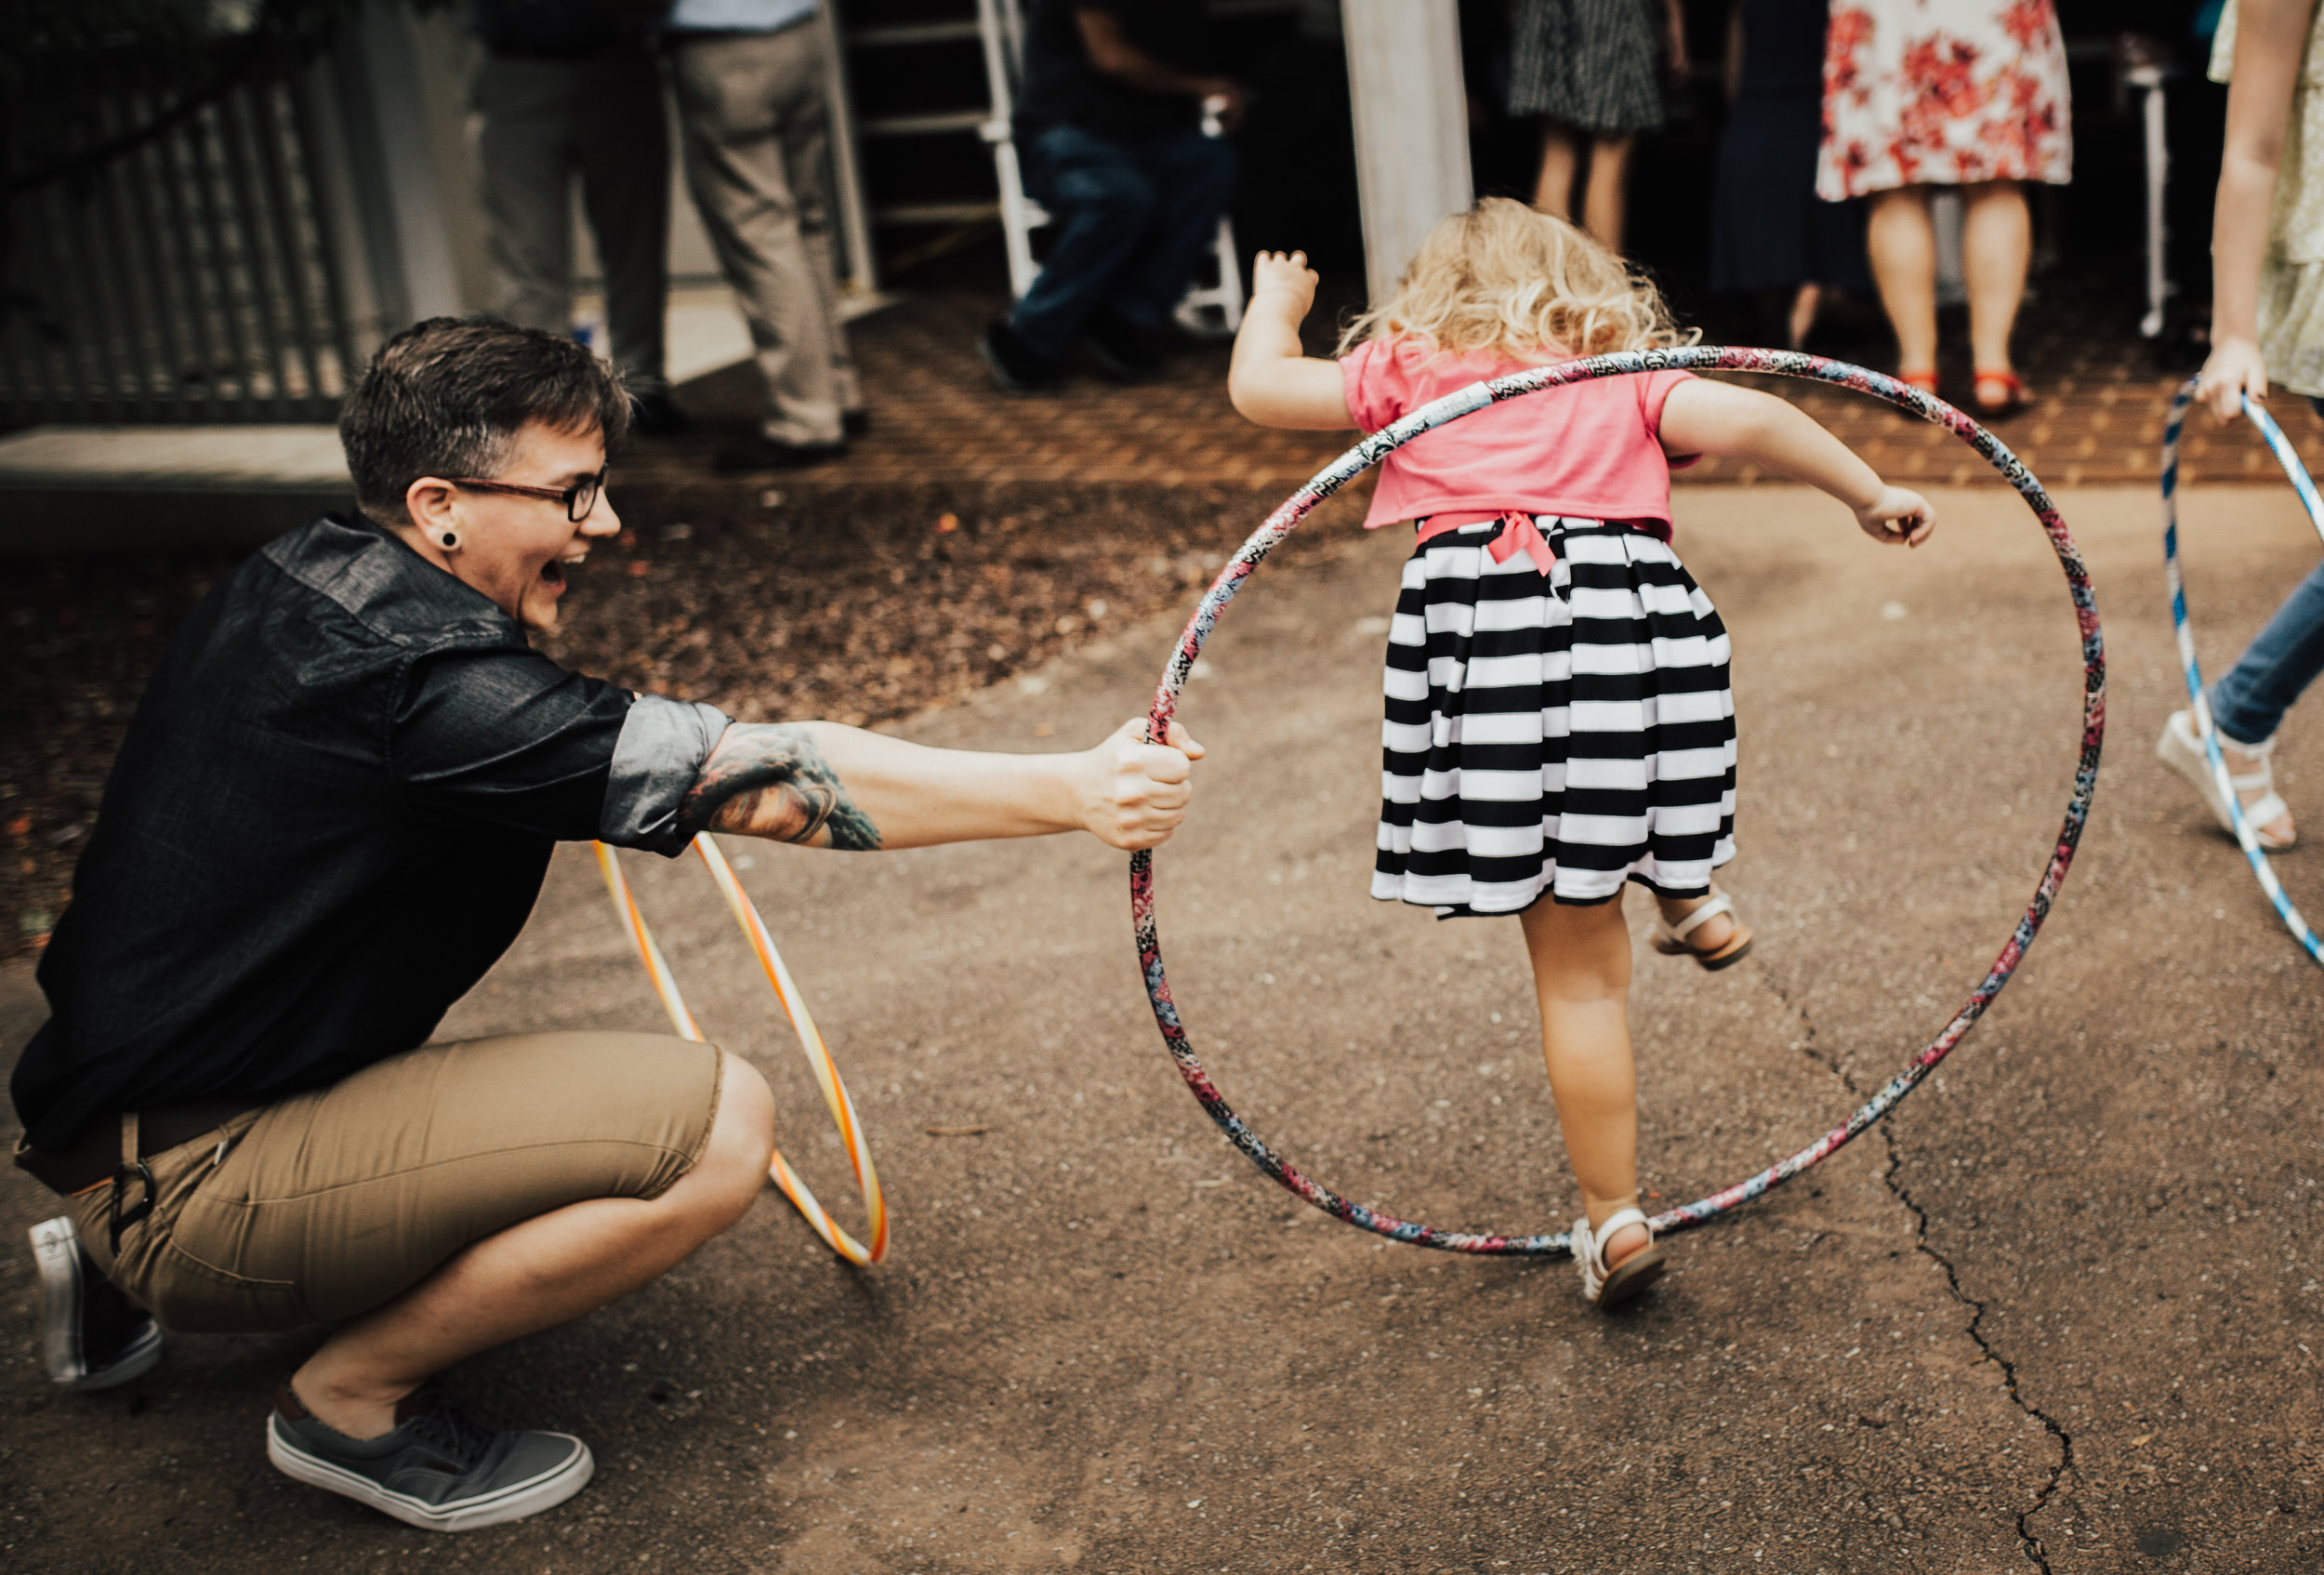 No party is complete without a little bit of hula hoop fun!